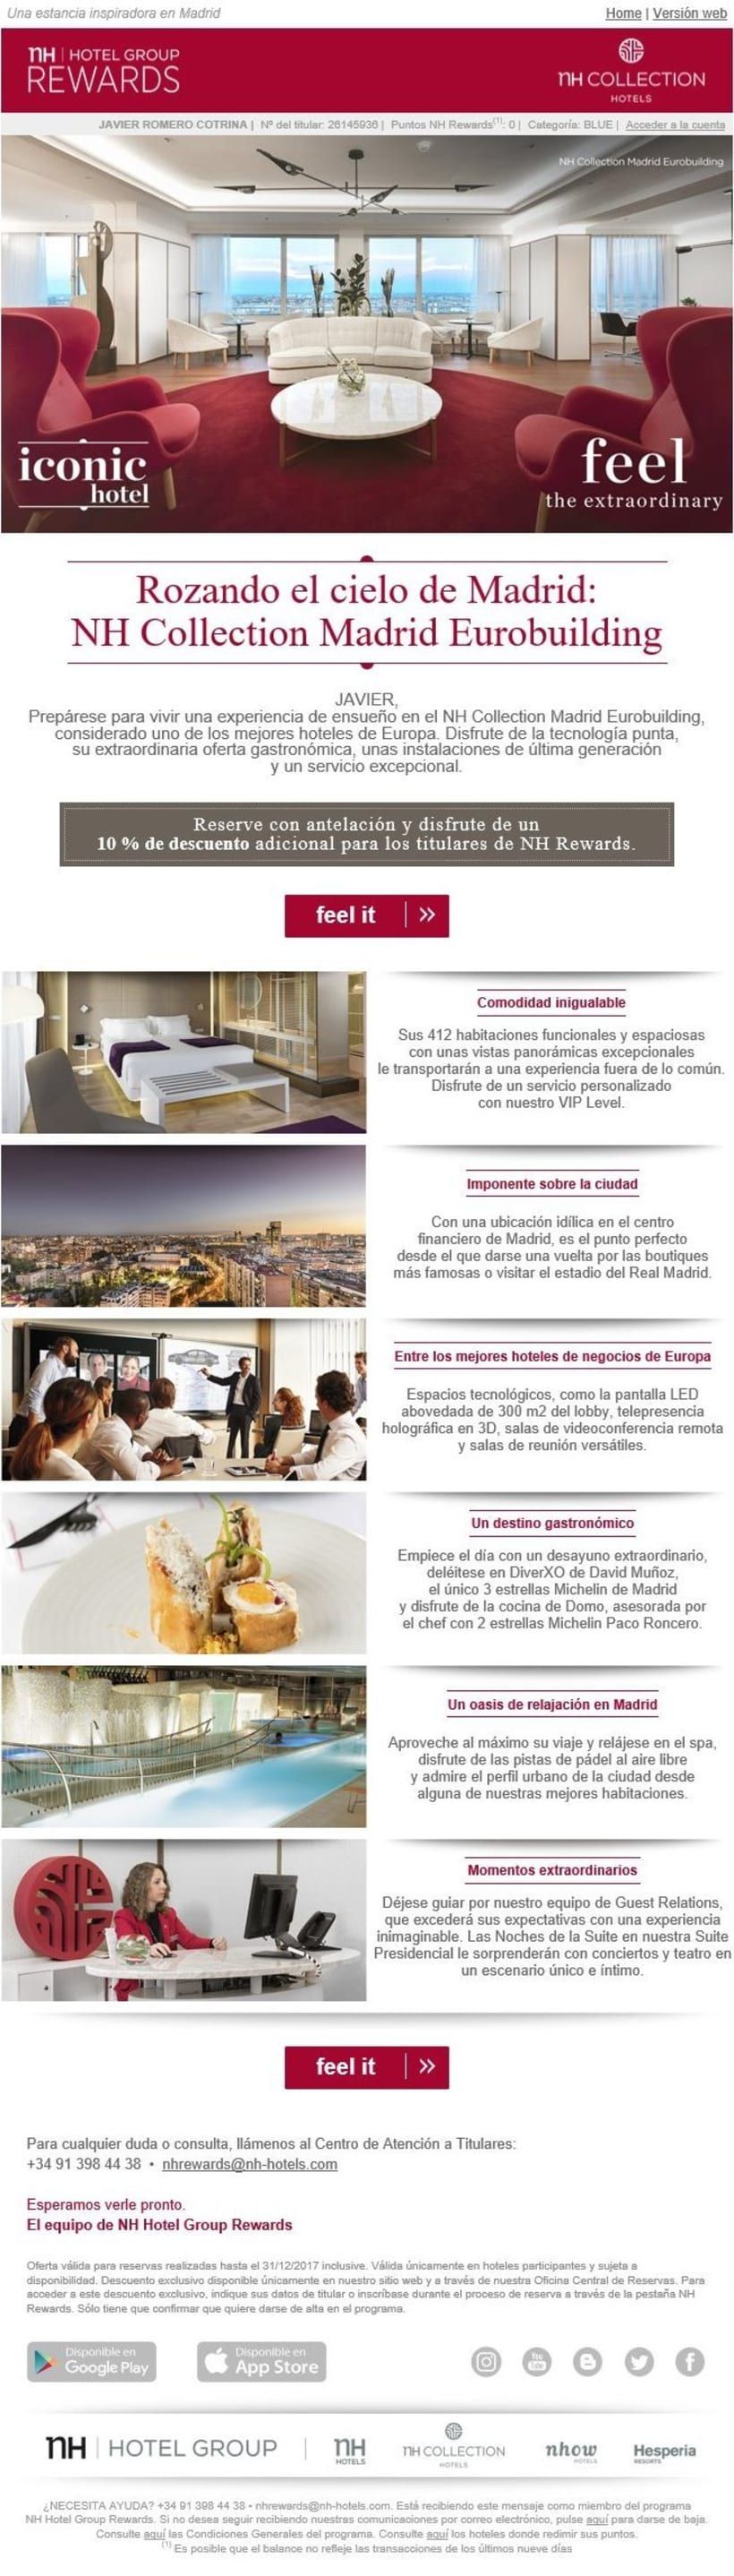 Nh-Hotel-Group (Diseño y Programación de Newsletters) 1